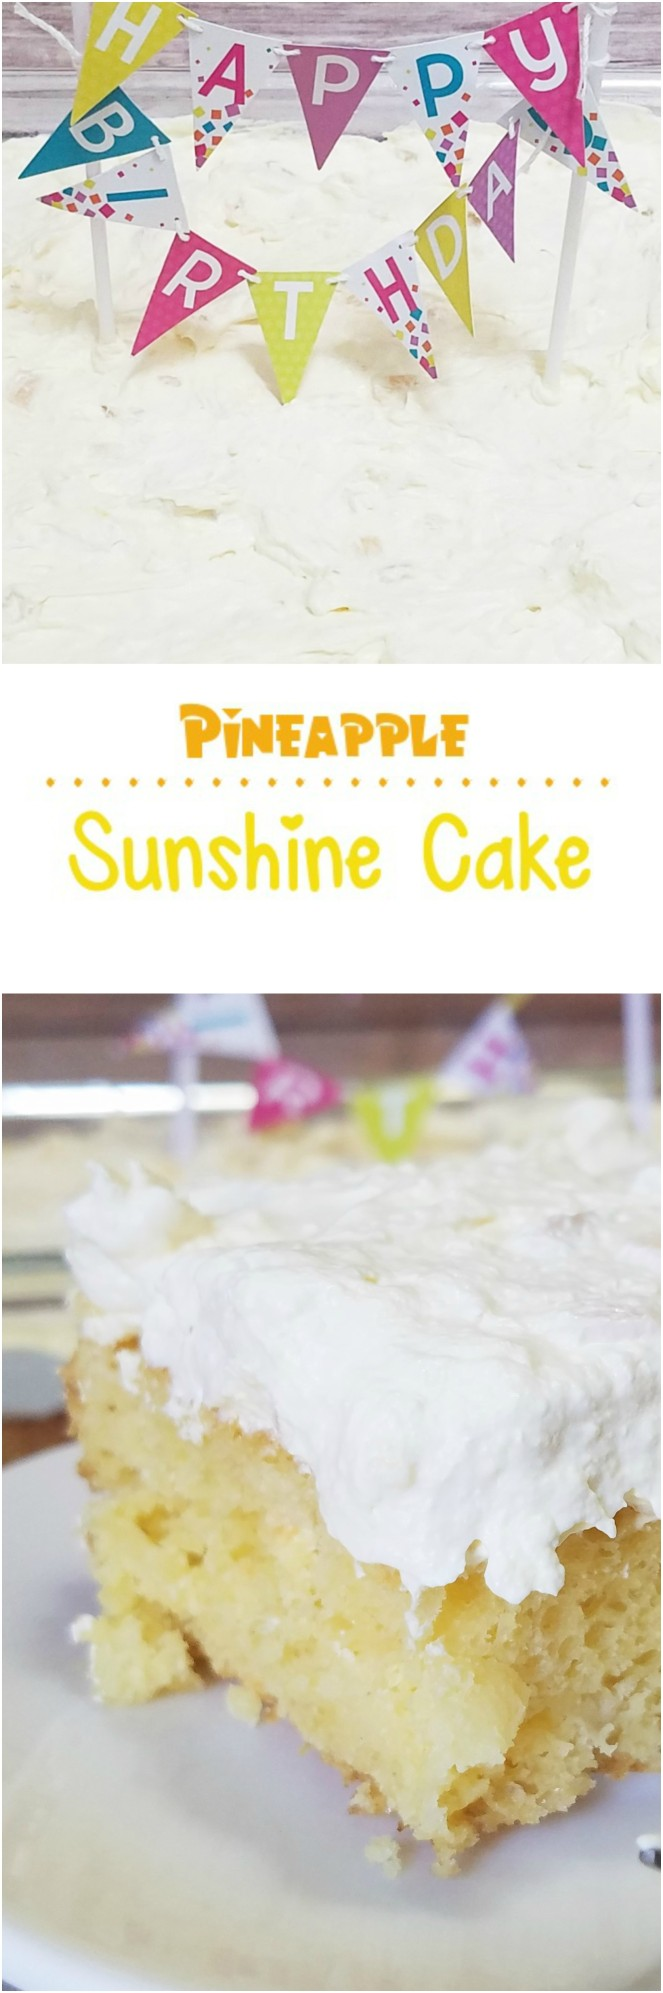 Pineapple Sunshine Cake by Rumbly in my Tumbly